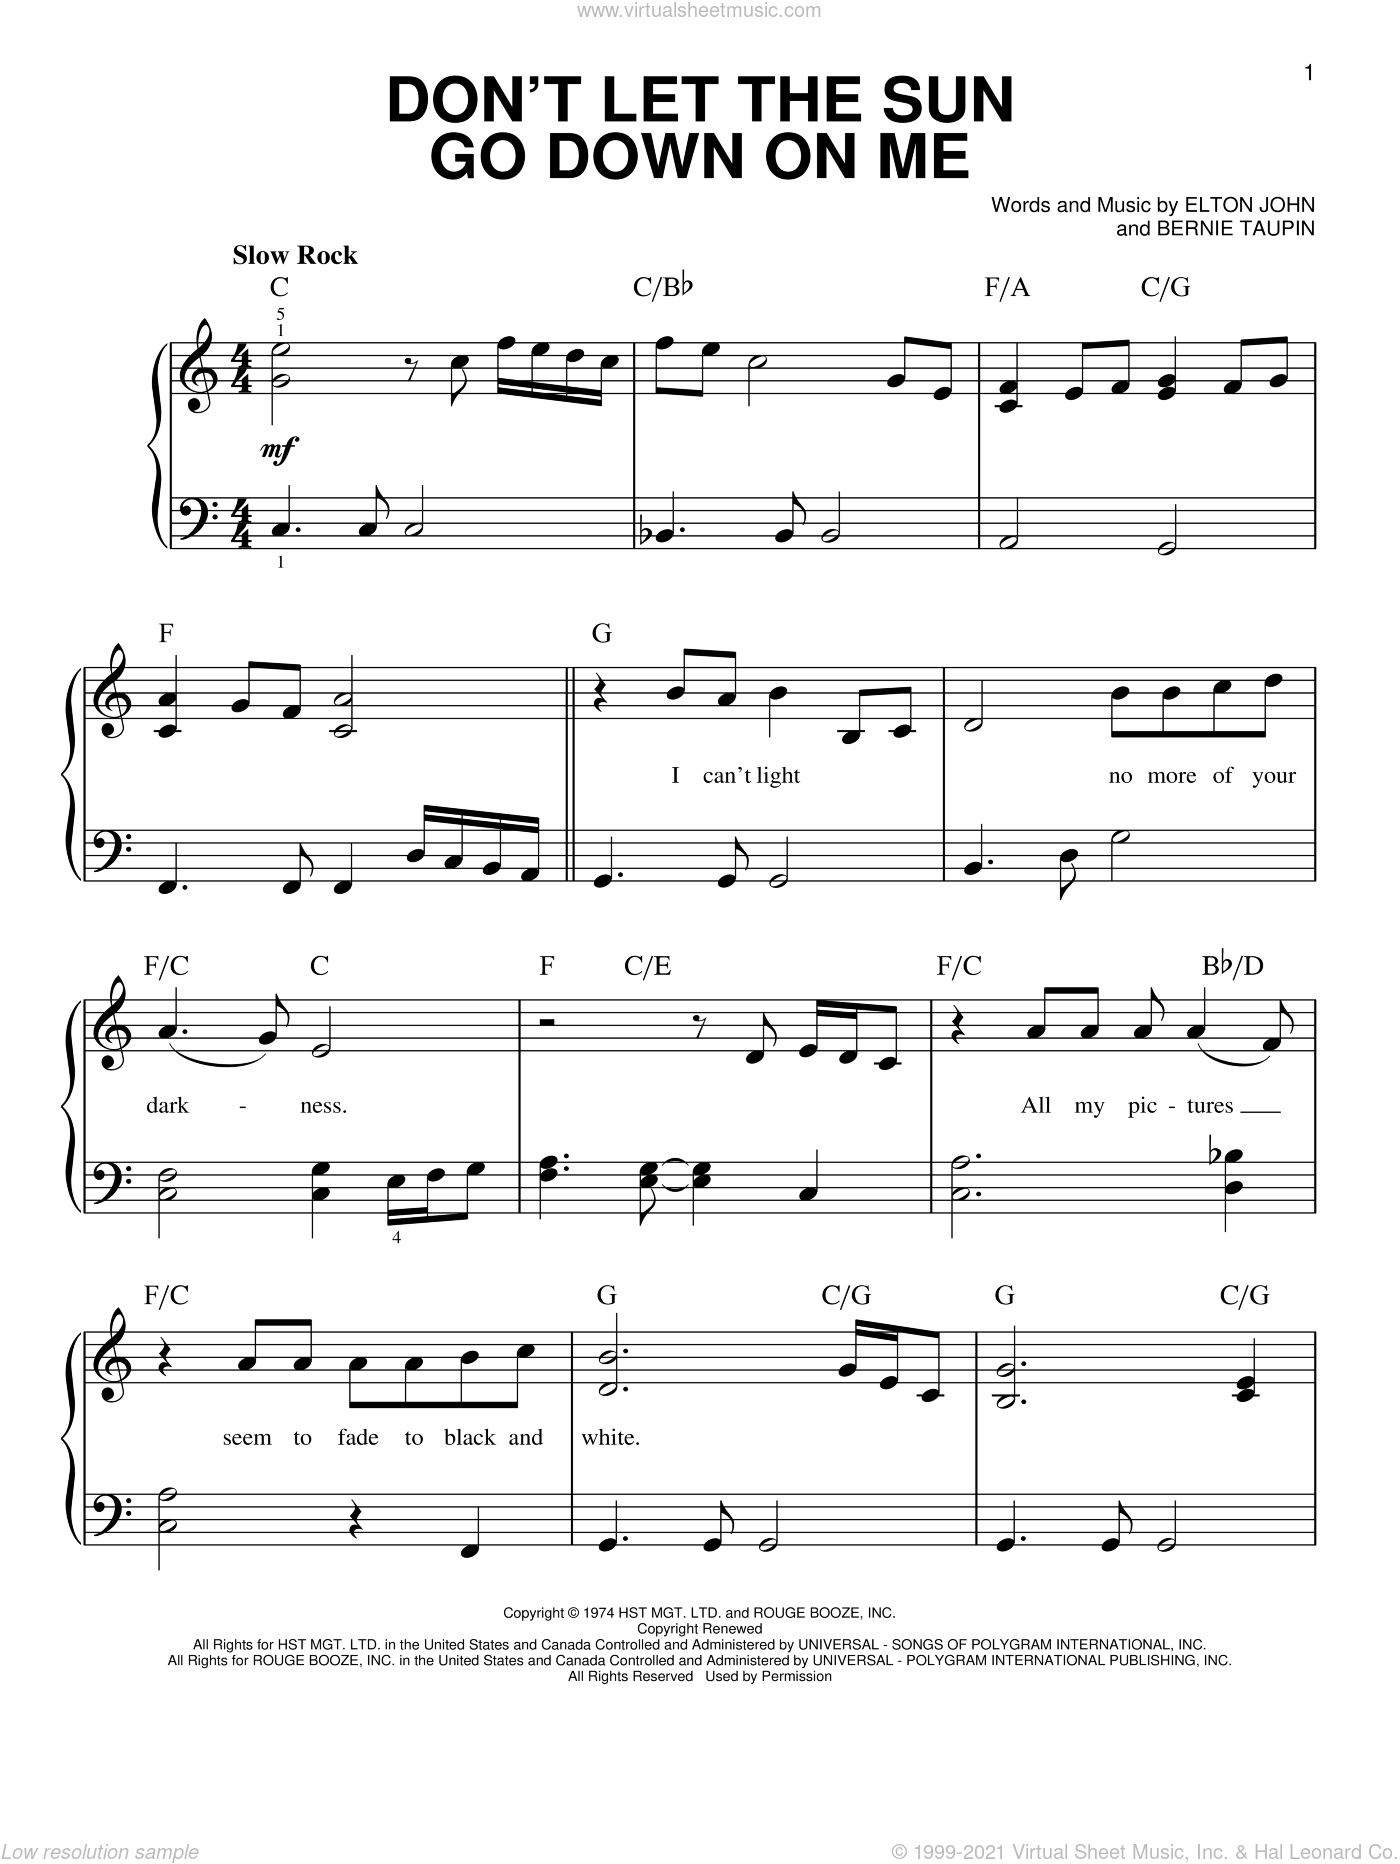 Don't Let The Sun Go Down On Me sheet music for piano solo by Elton John & George Michael, Bernie Taupin and Elton John, beginner skill level